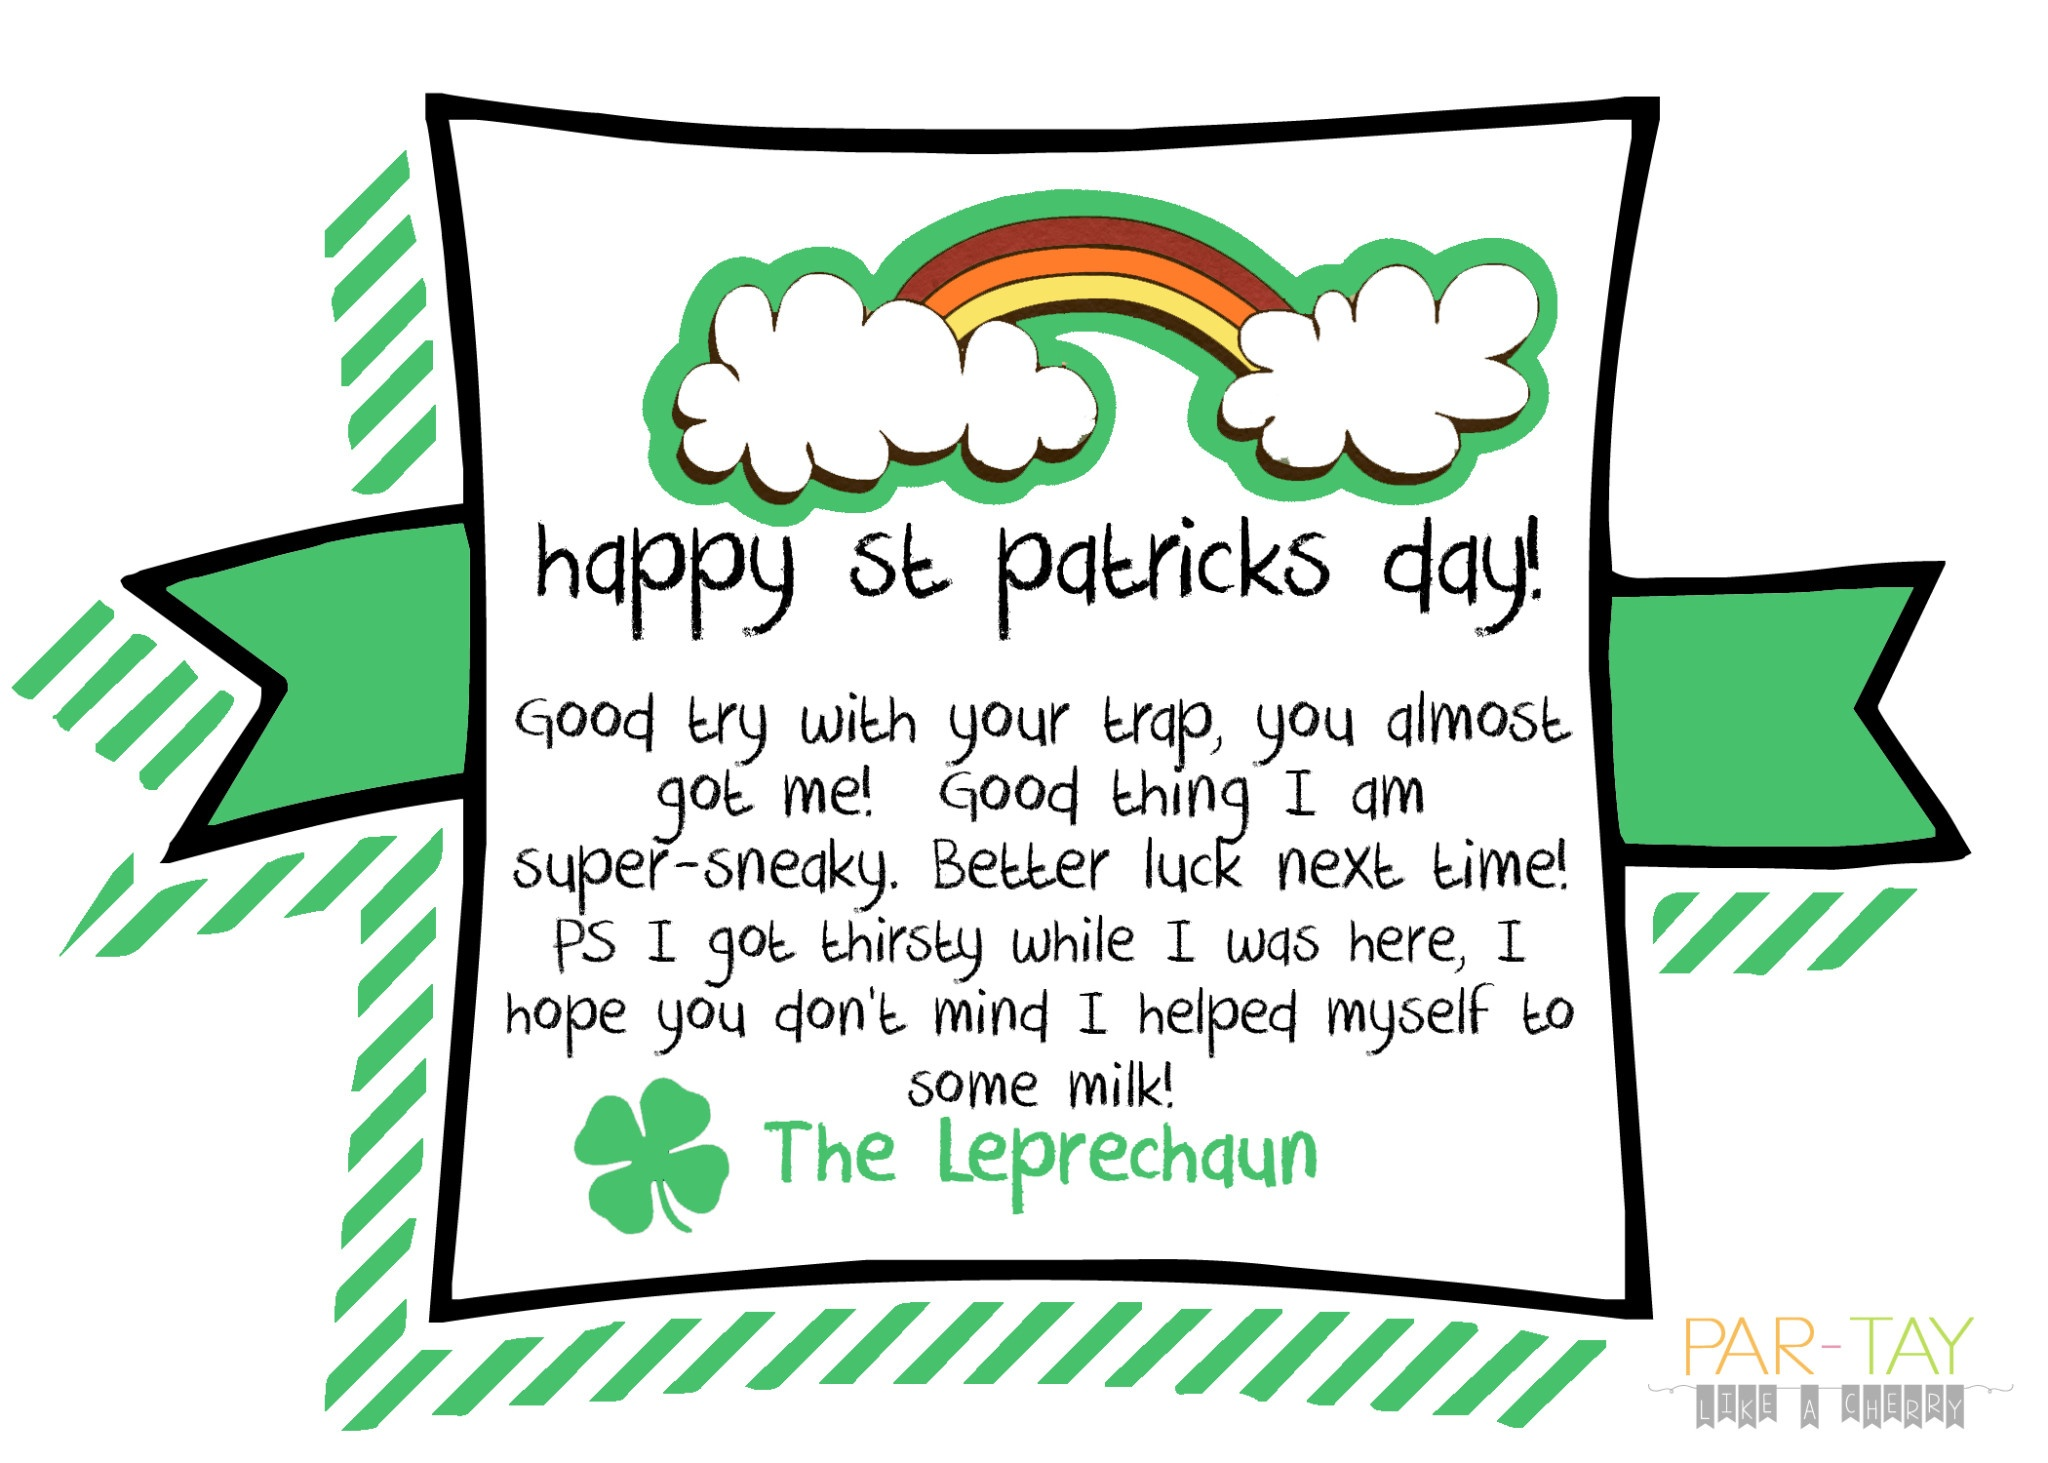 Last Minute St Patrick's Day Idea - Party Like A Cherry - Free Printable Leprechaun Notes